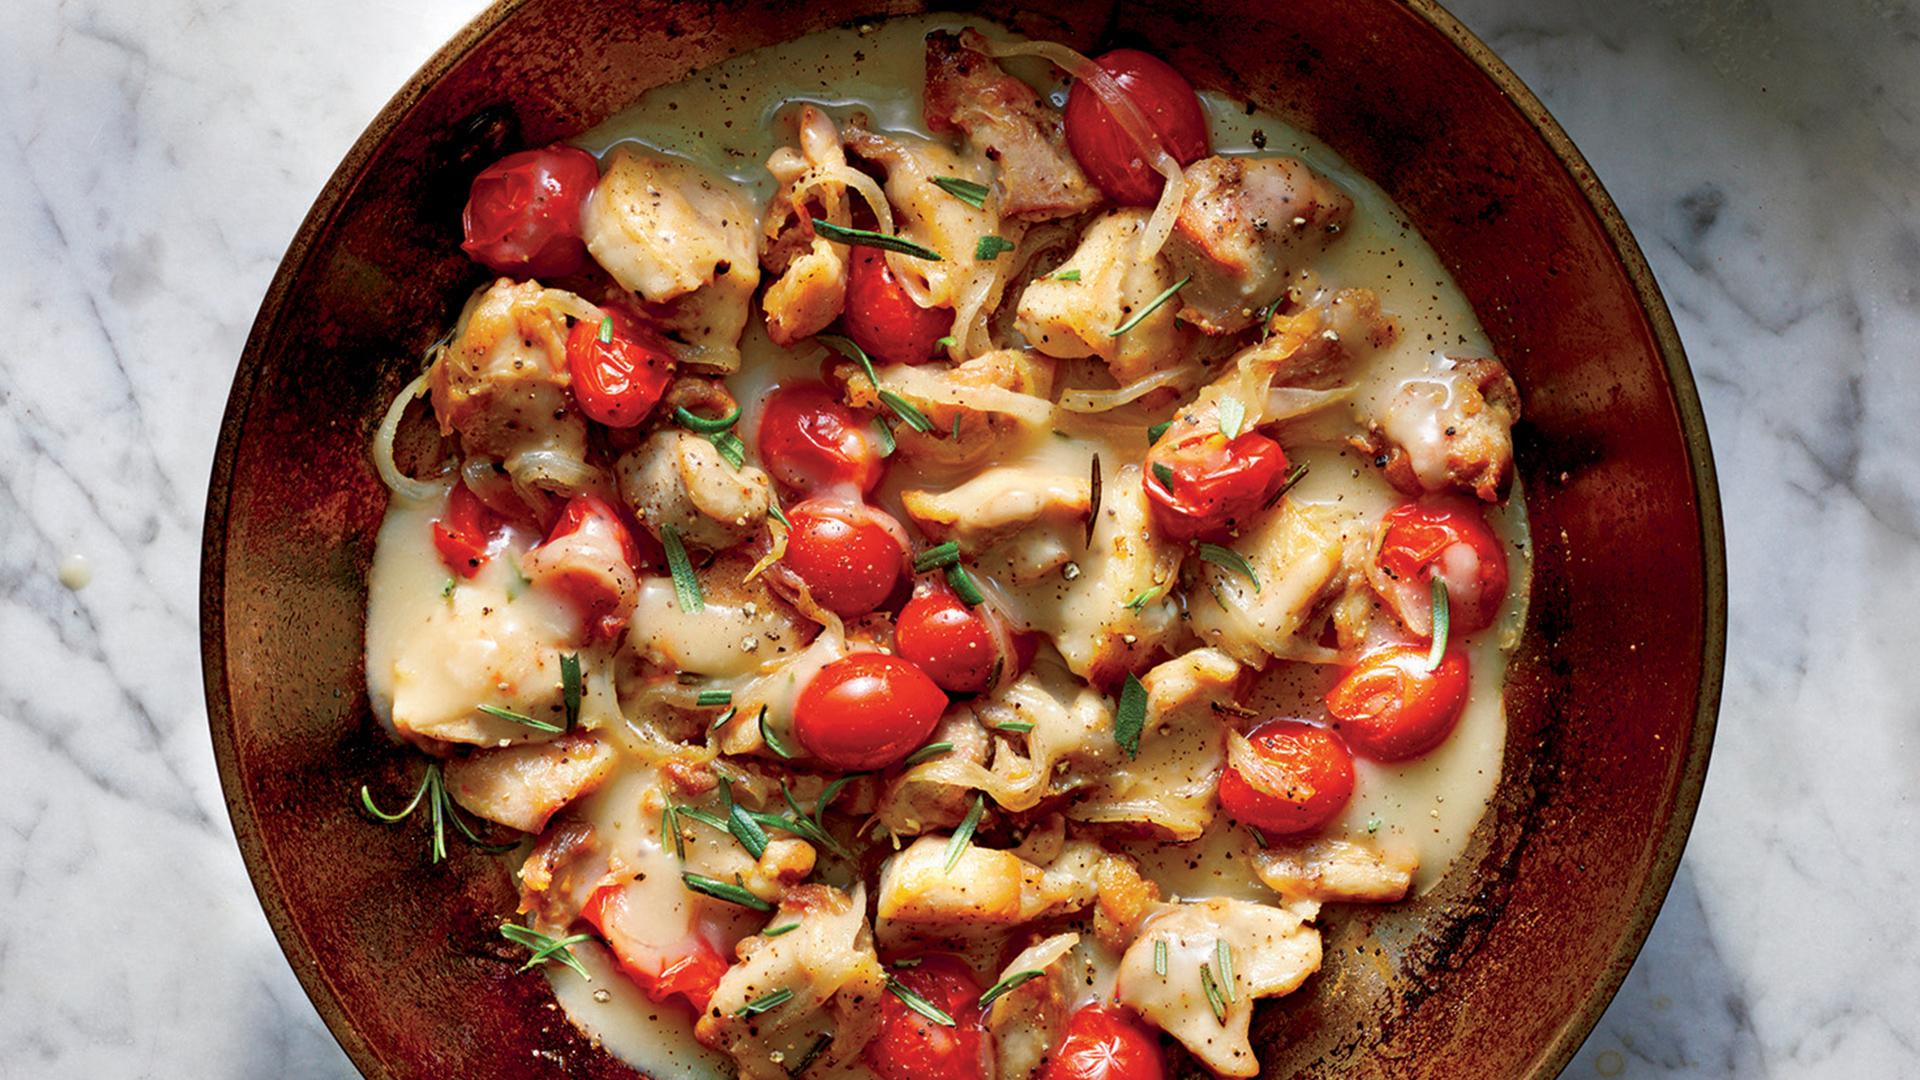 How to Make a Chicken Tomato Skillet Dinner